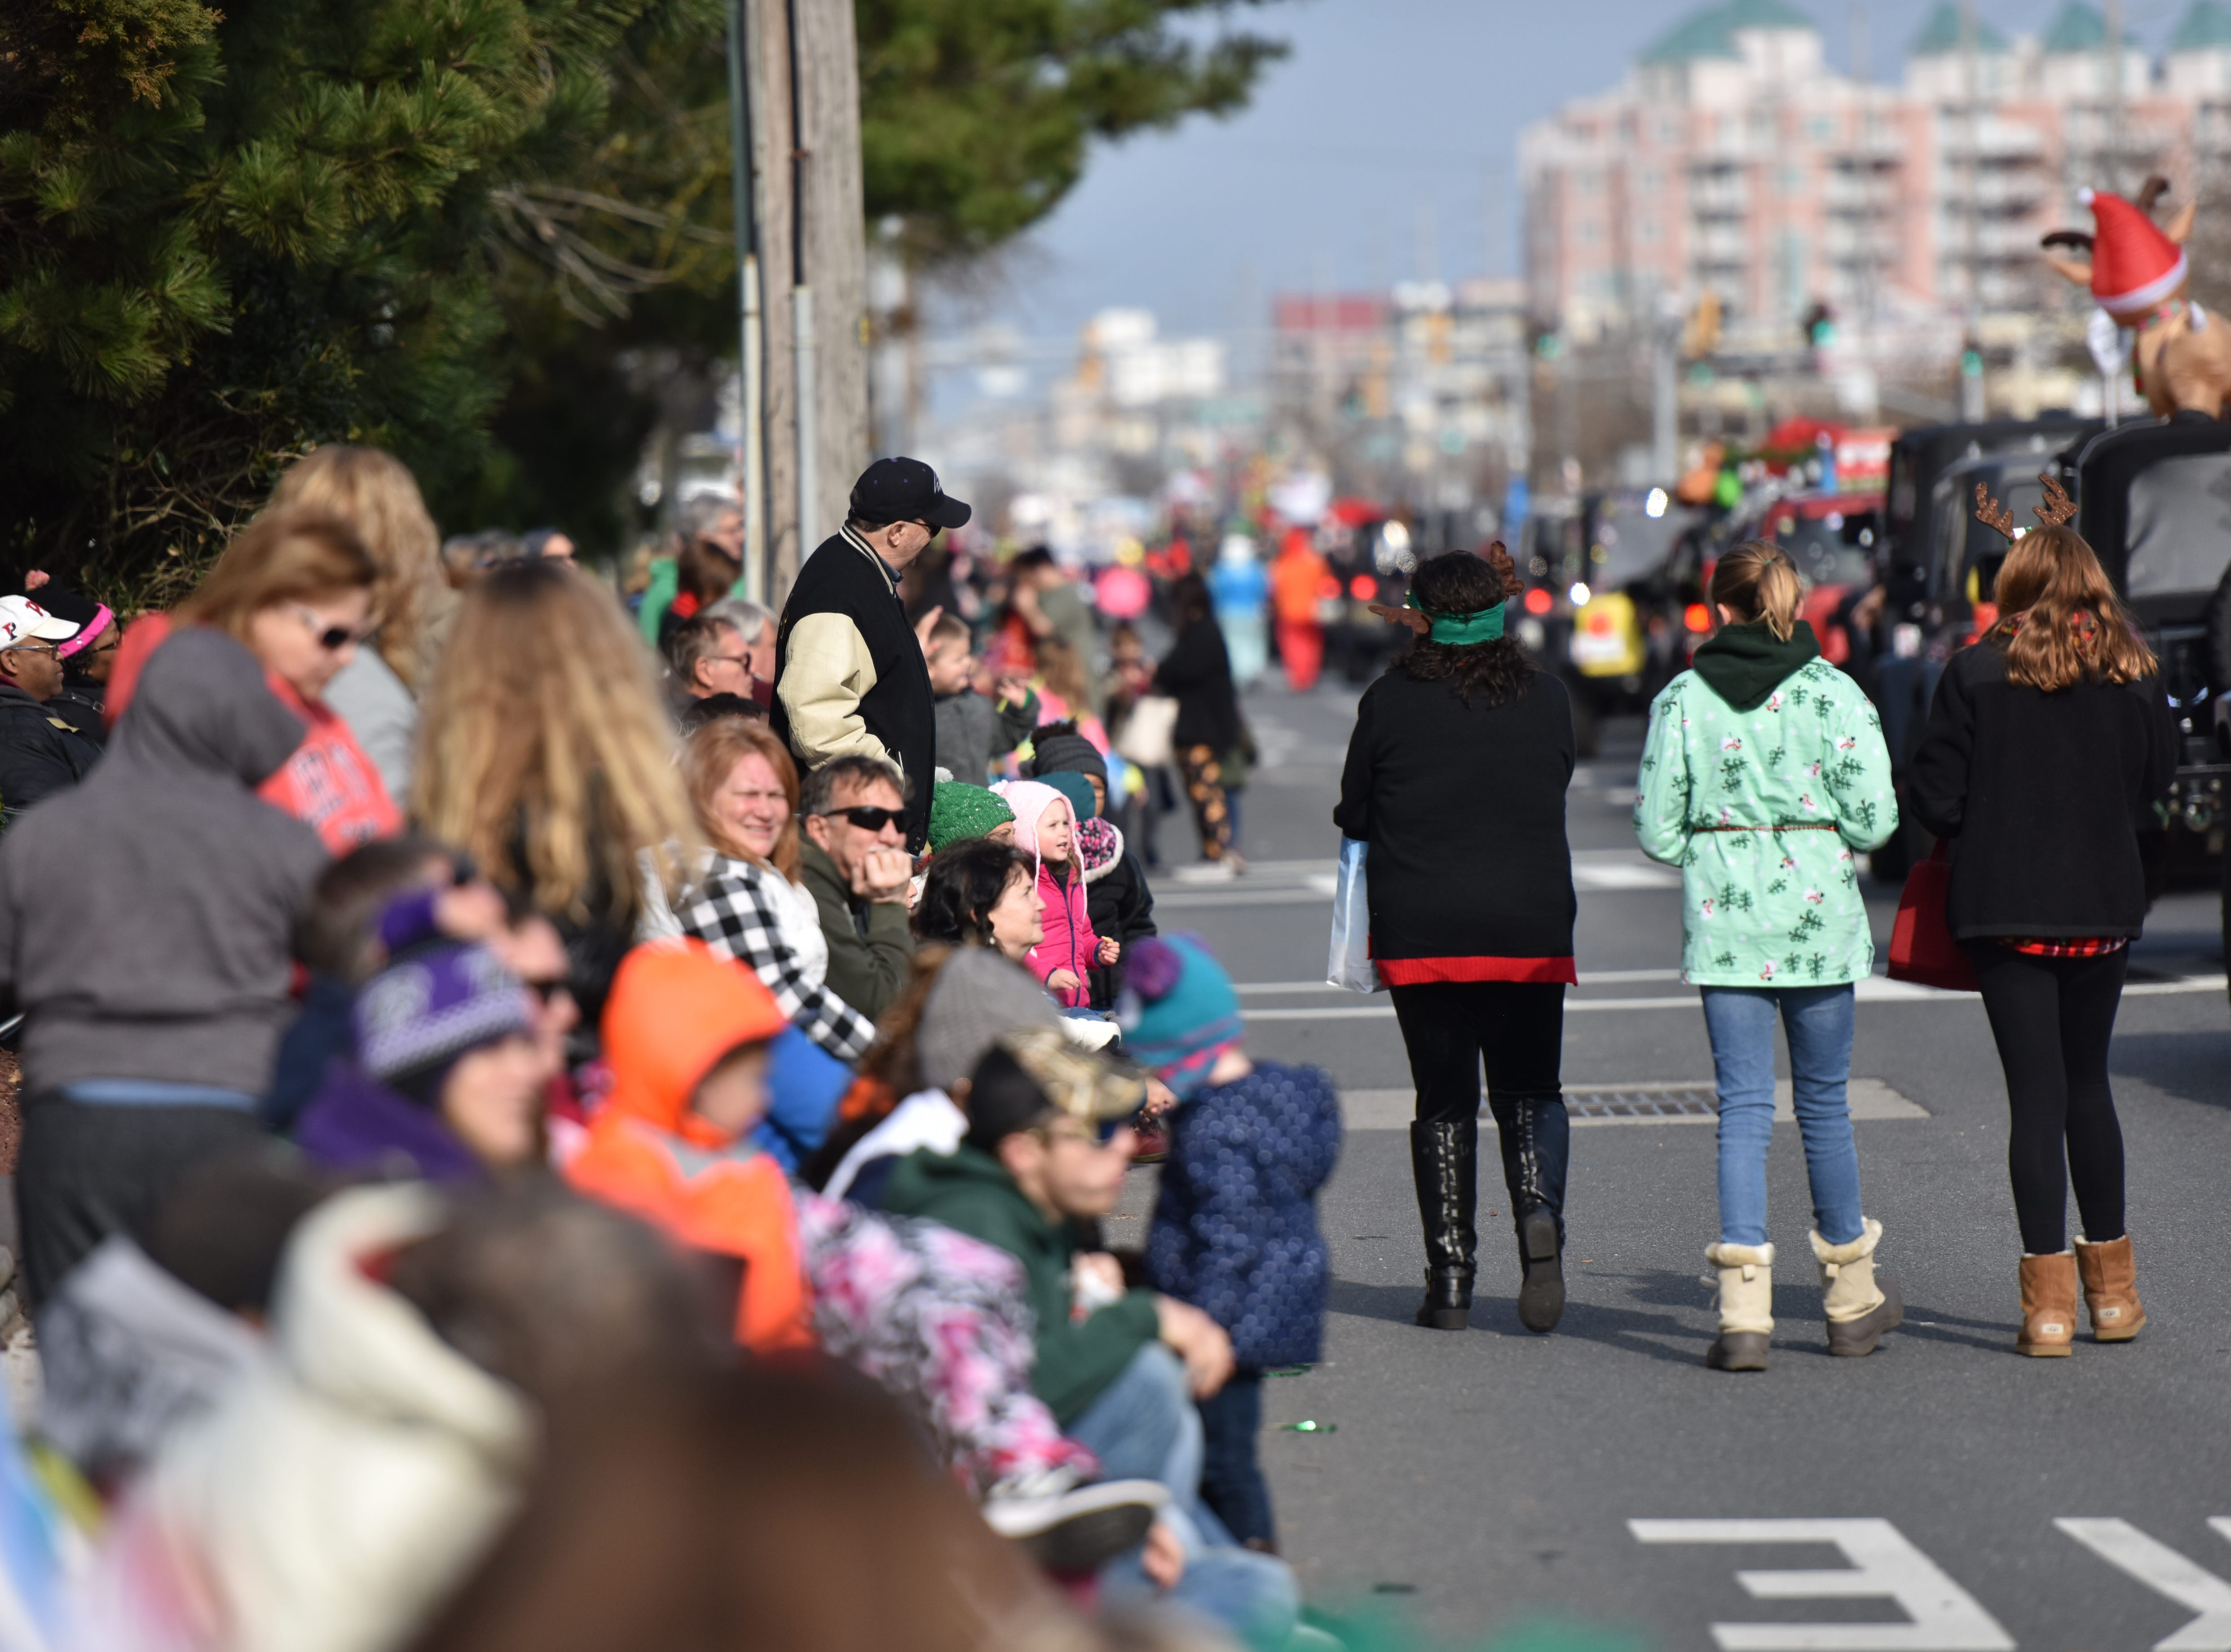 Many lined the streets for the 2018 Ocean City Christmas parade.